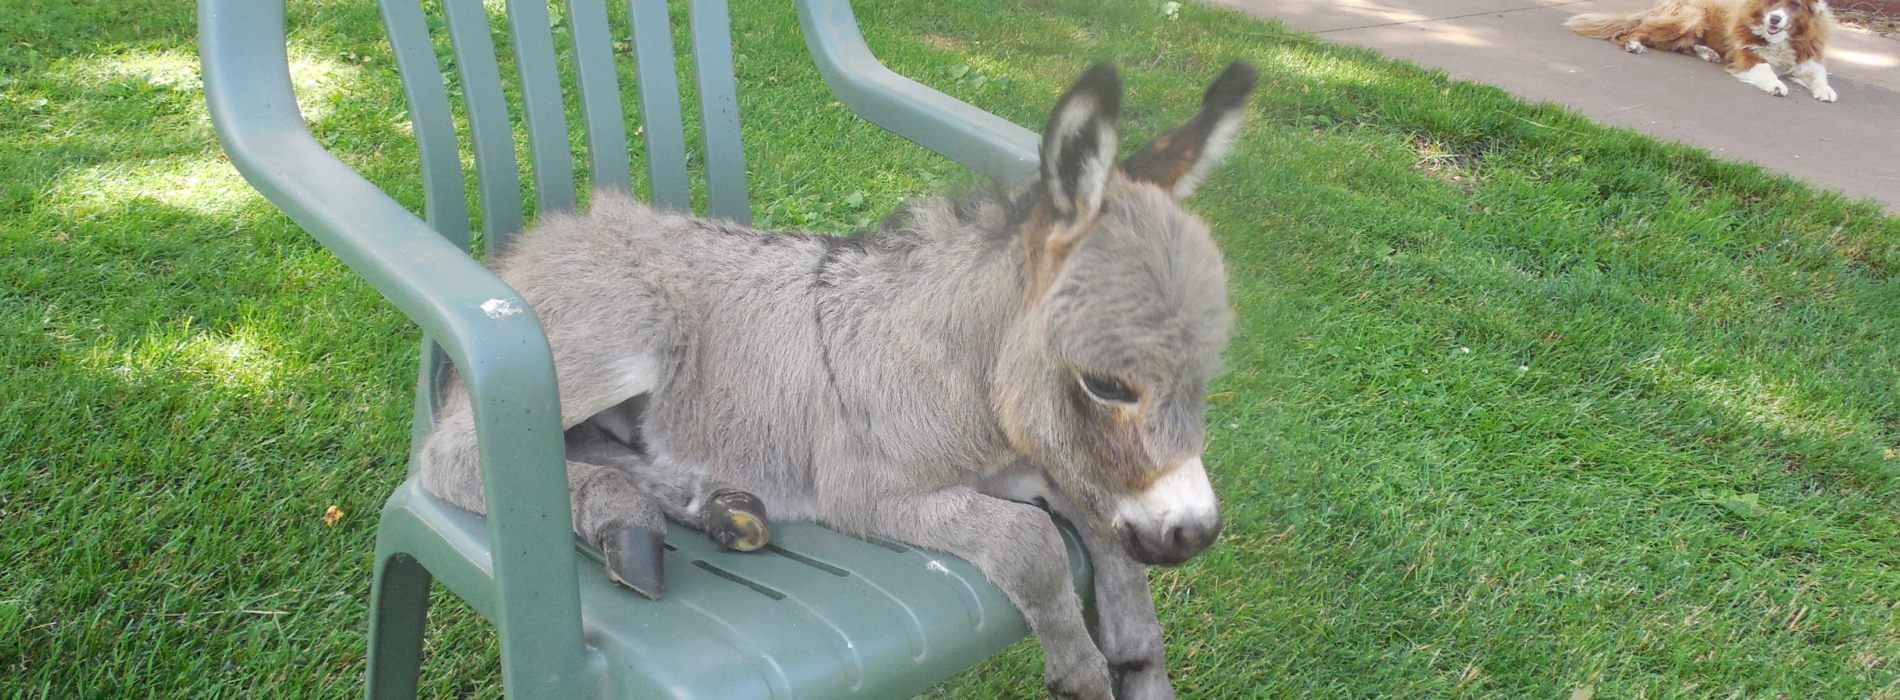 Sunny G Acres: Miniature Donkeys and Micro-Mini Donkeys